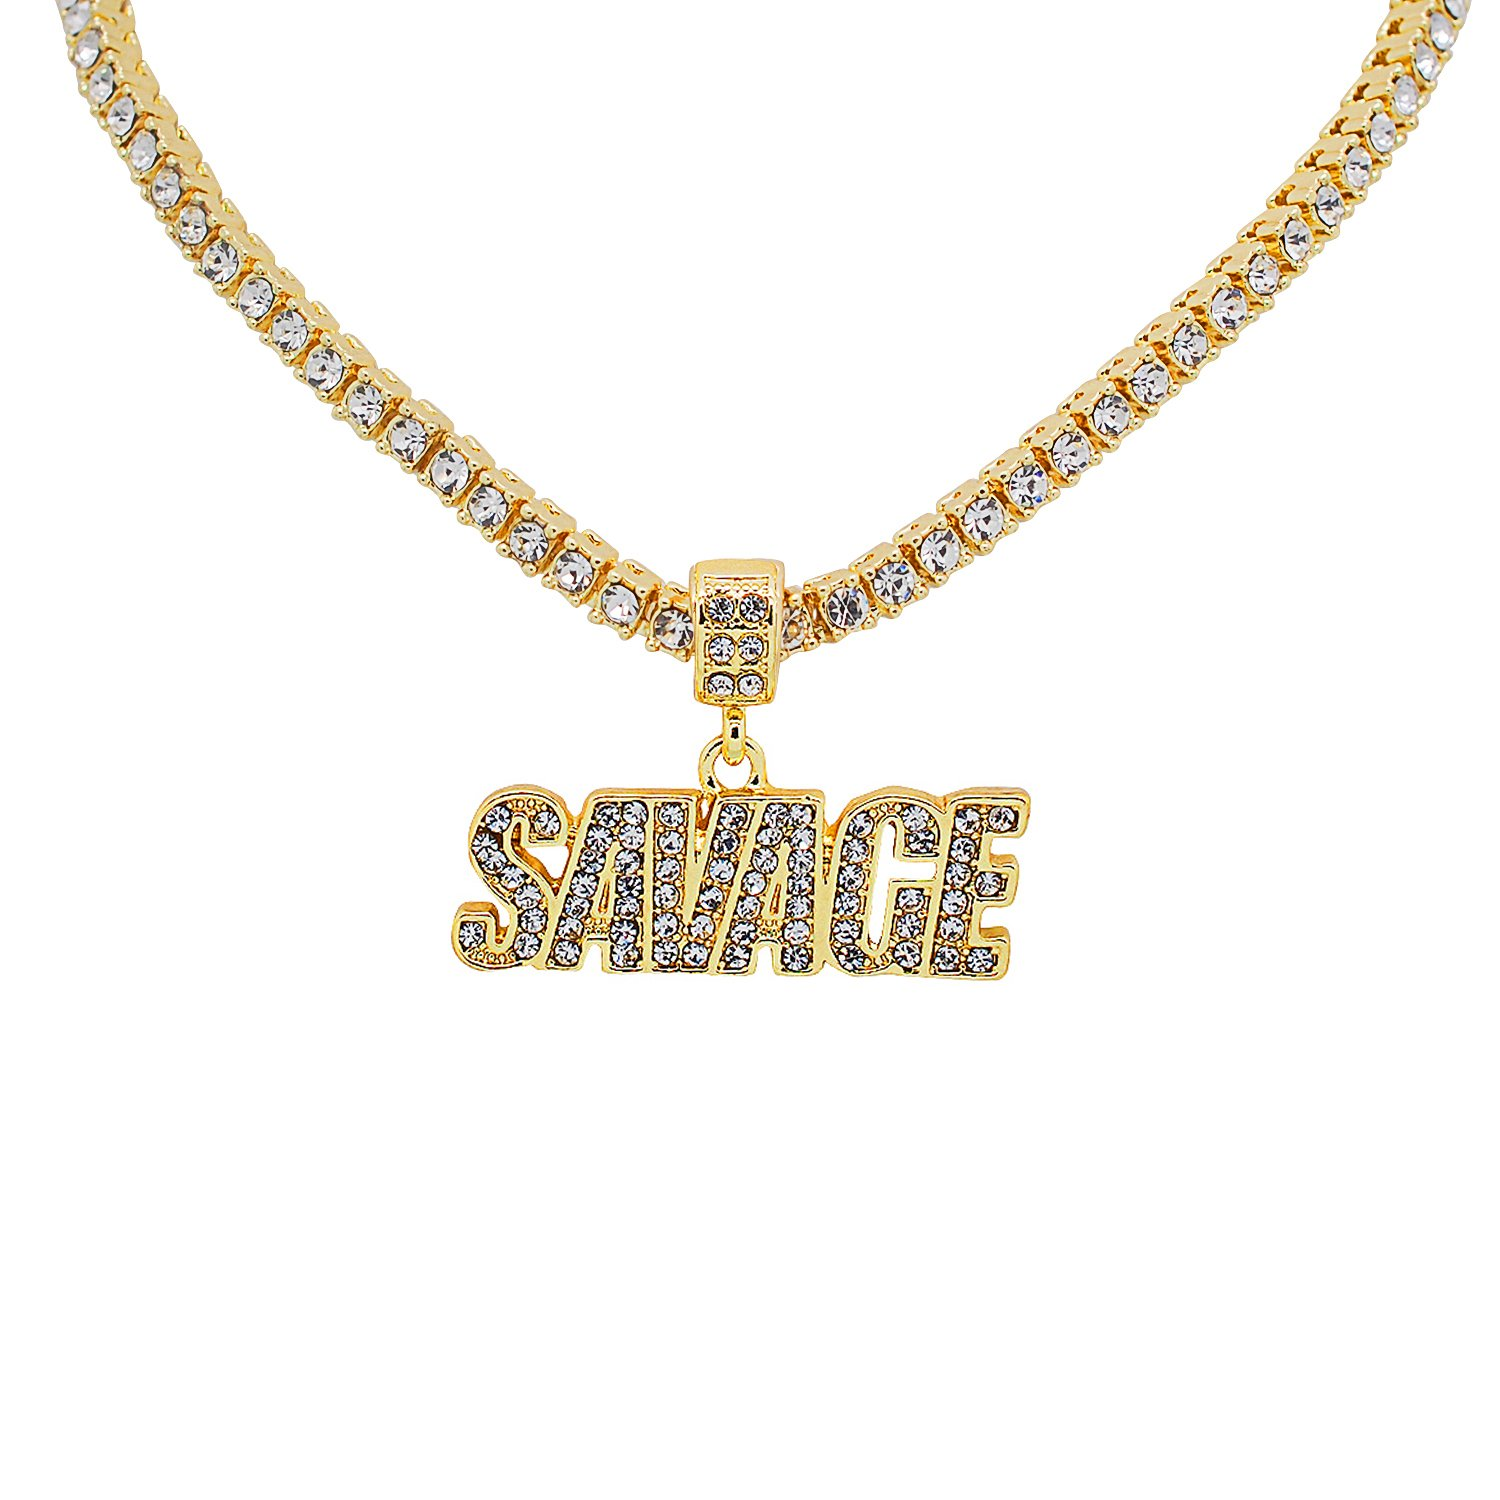 Yellow Gold-Tone Hip Hop Bling Simulated Crystal Savage Letter Pendant with 24 Tennis Chain and 24 Rope Chain